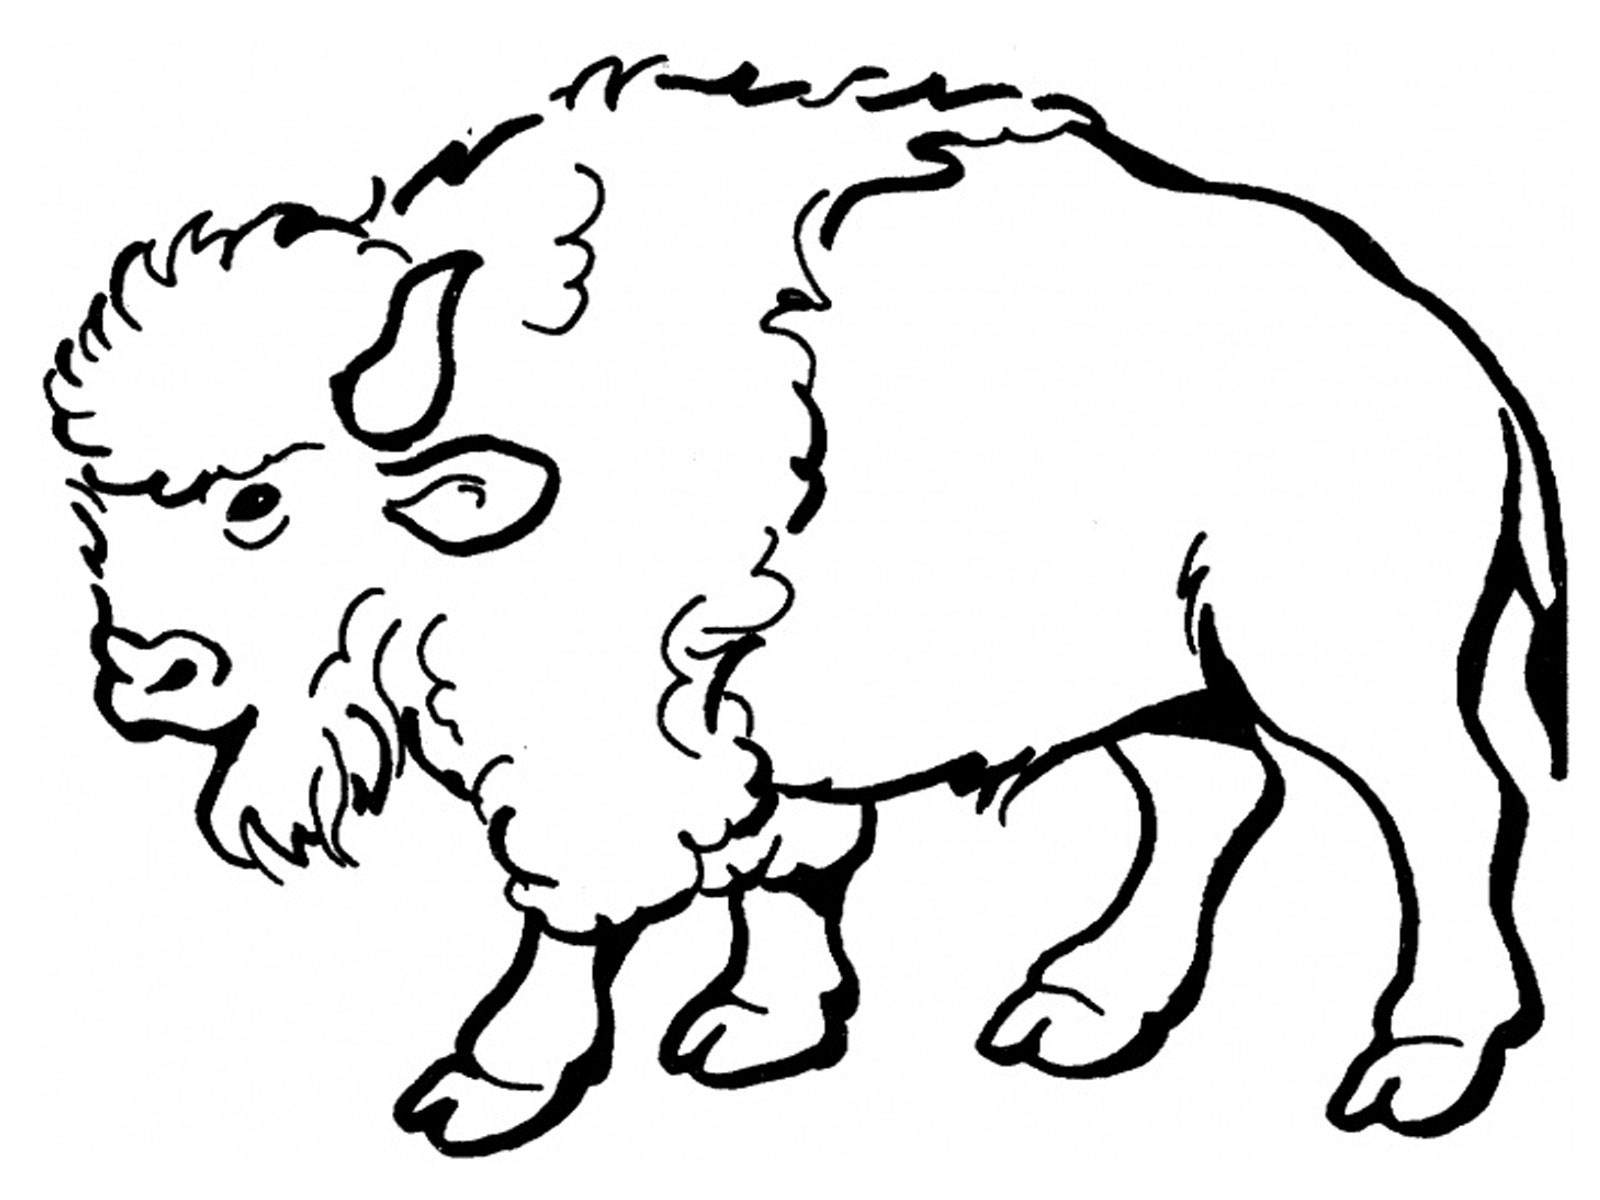 jpeg coloring pages - photo#25